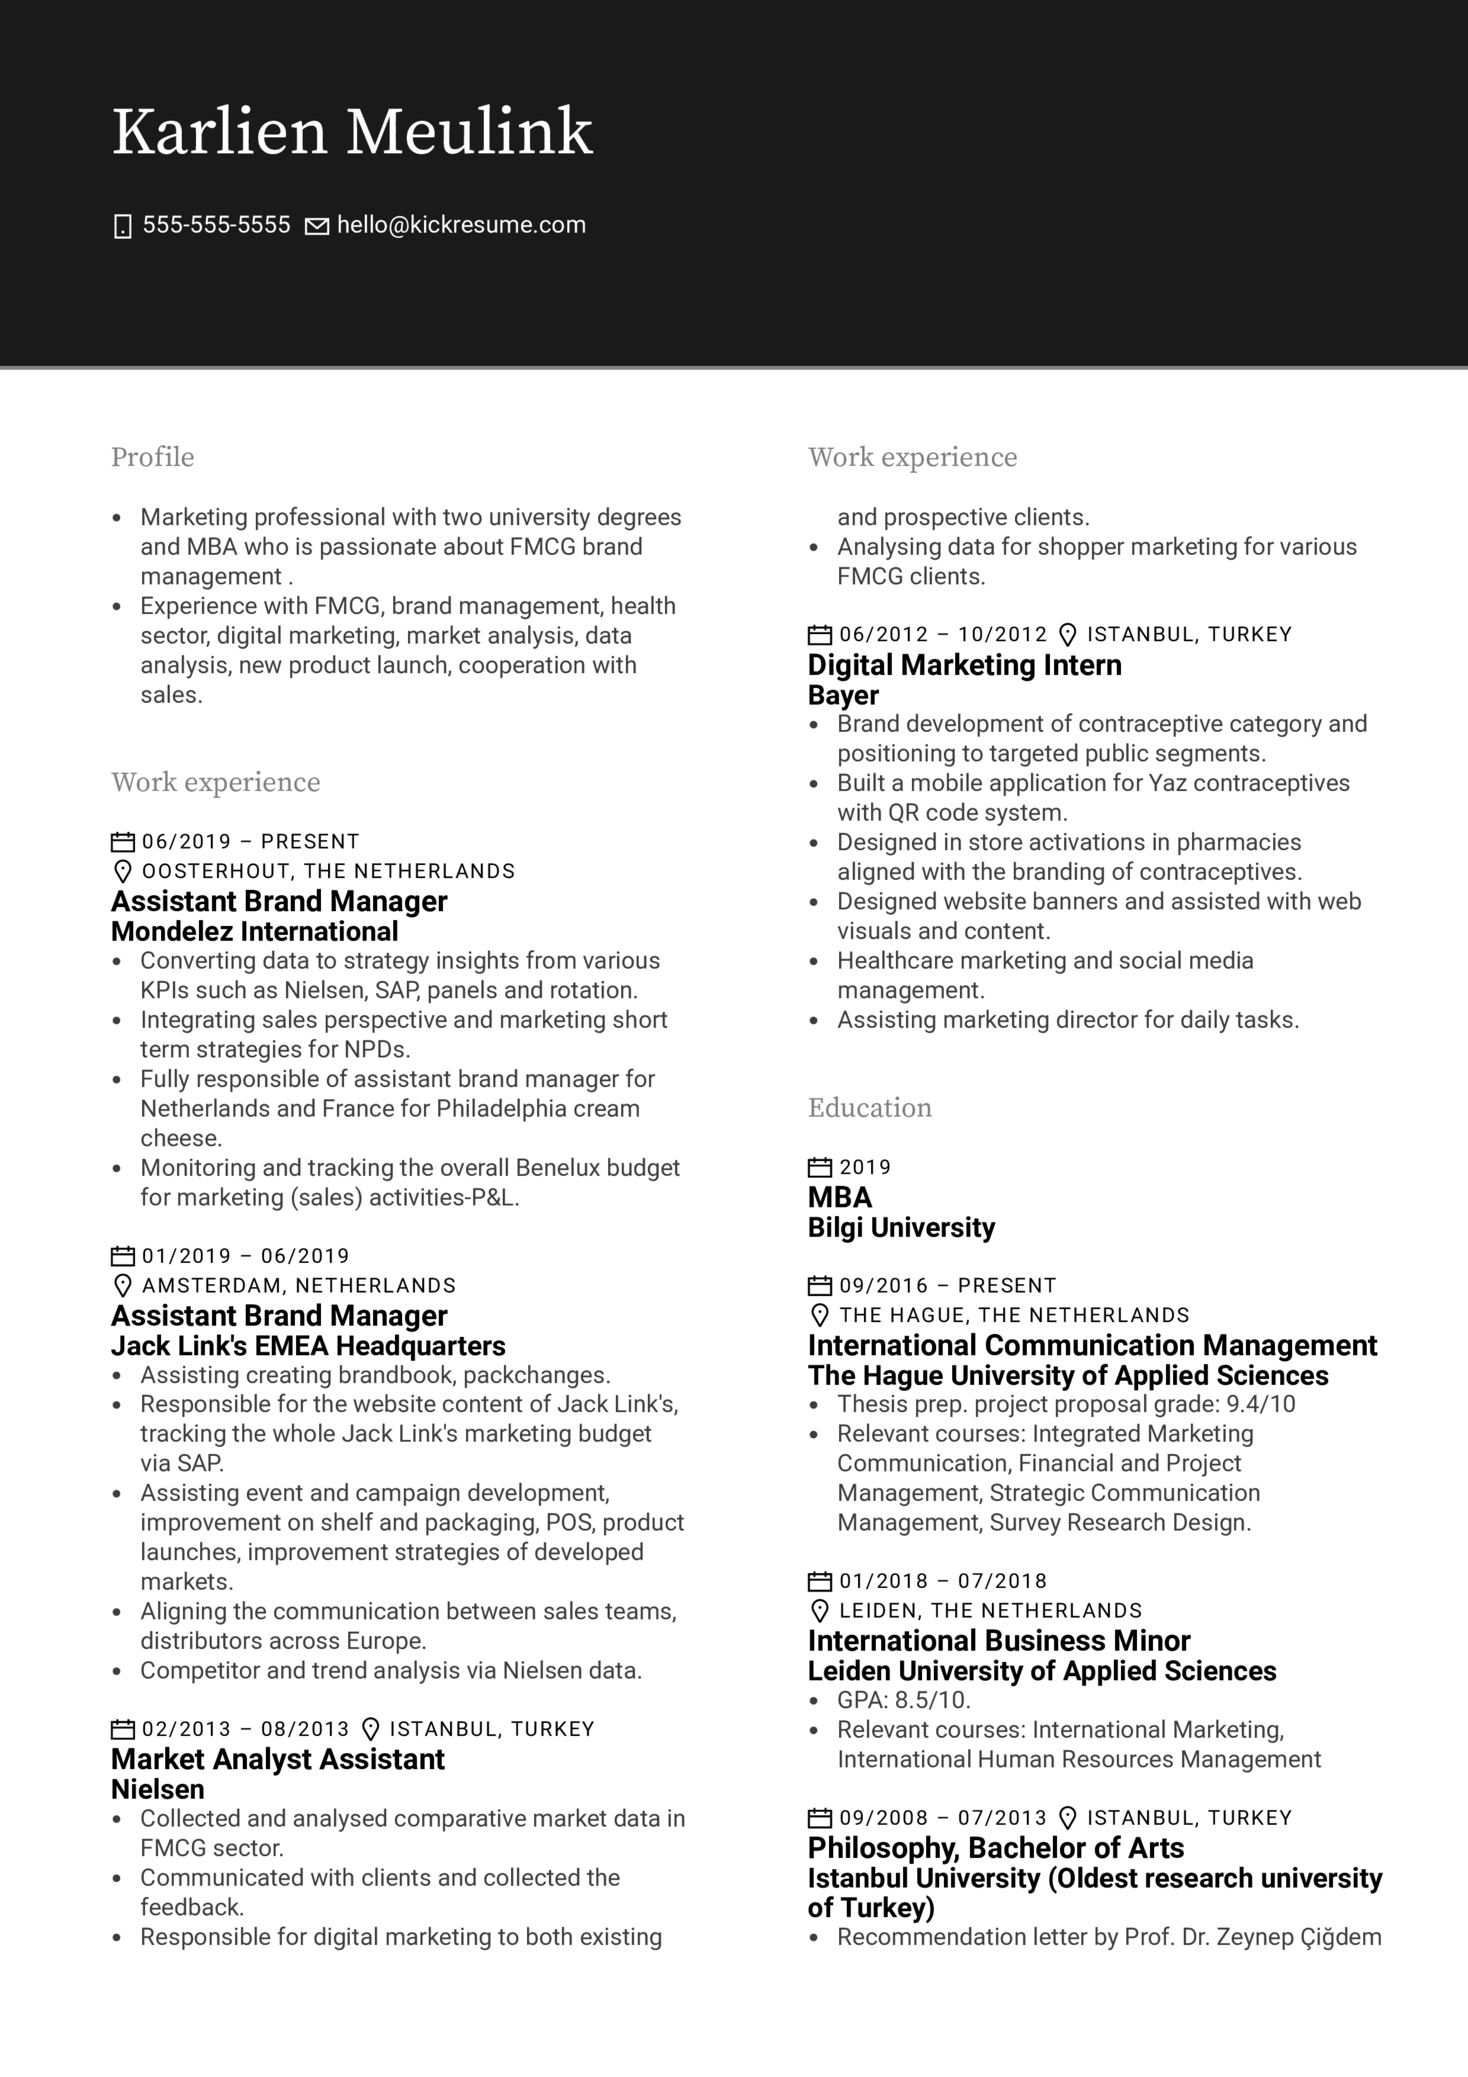 Mondelez International Assistant Brand Manager Resume Example